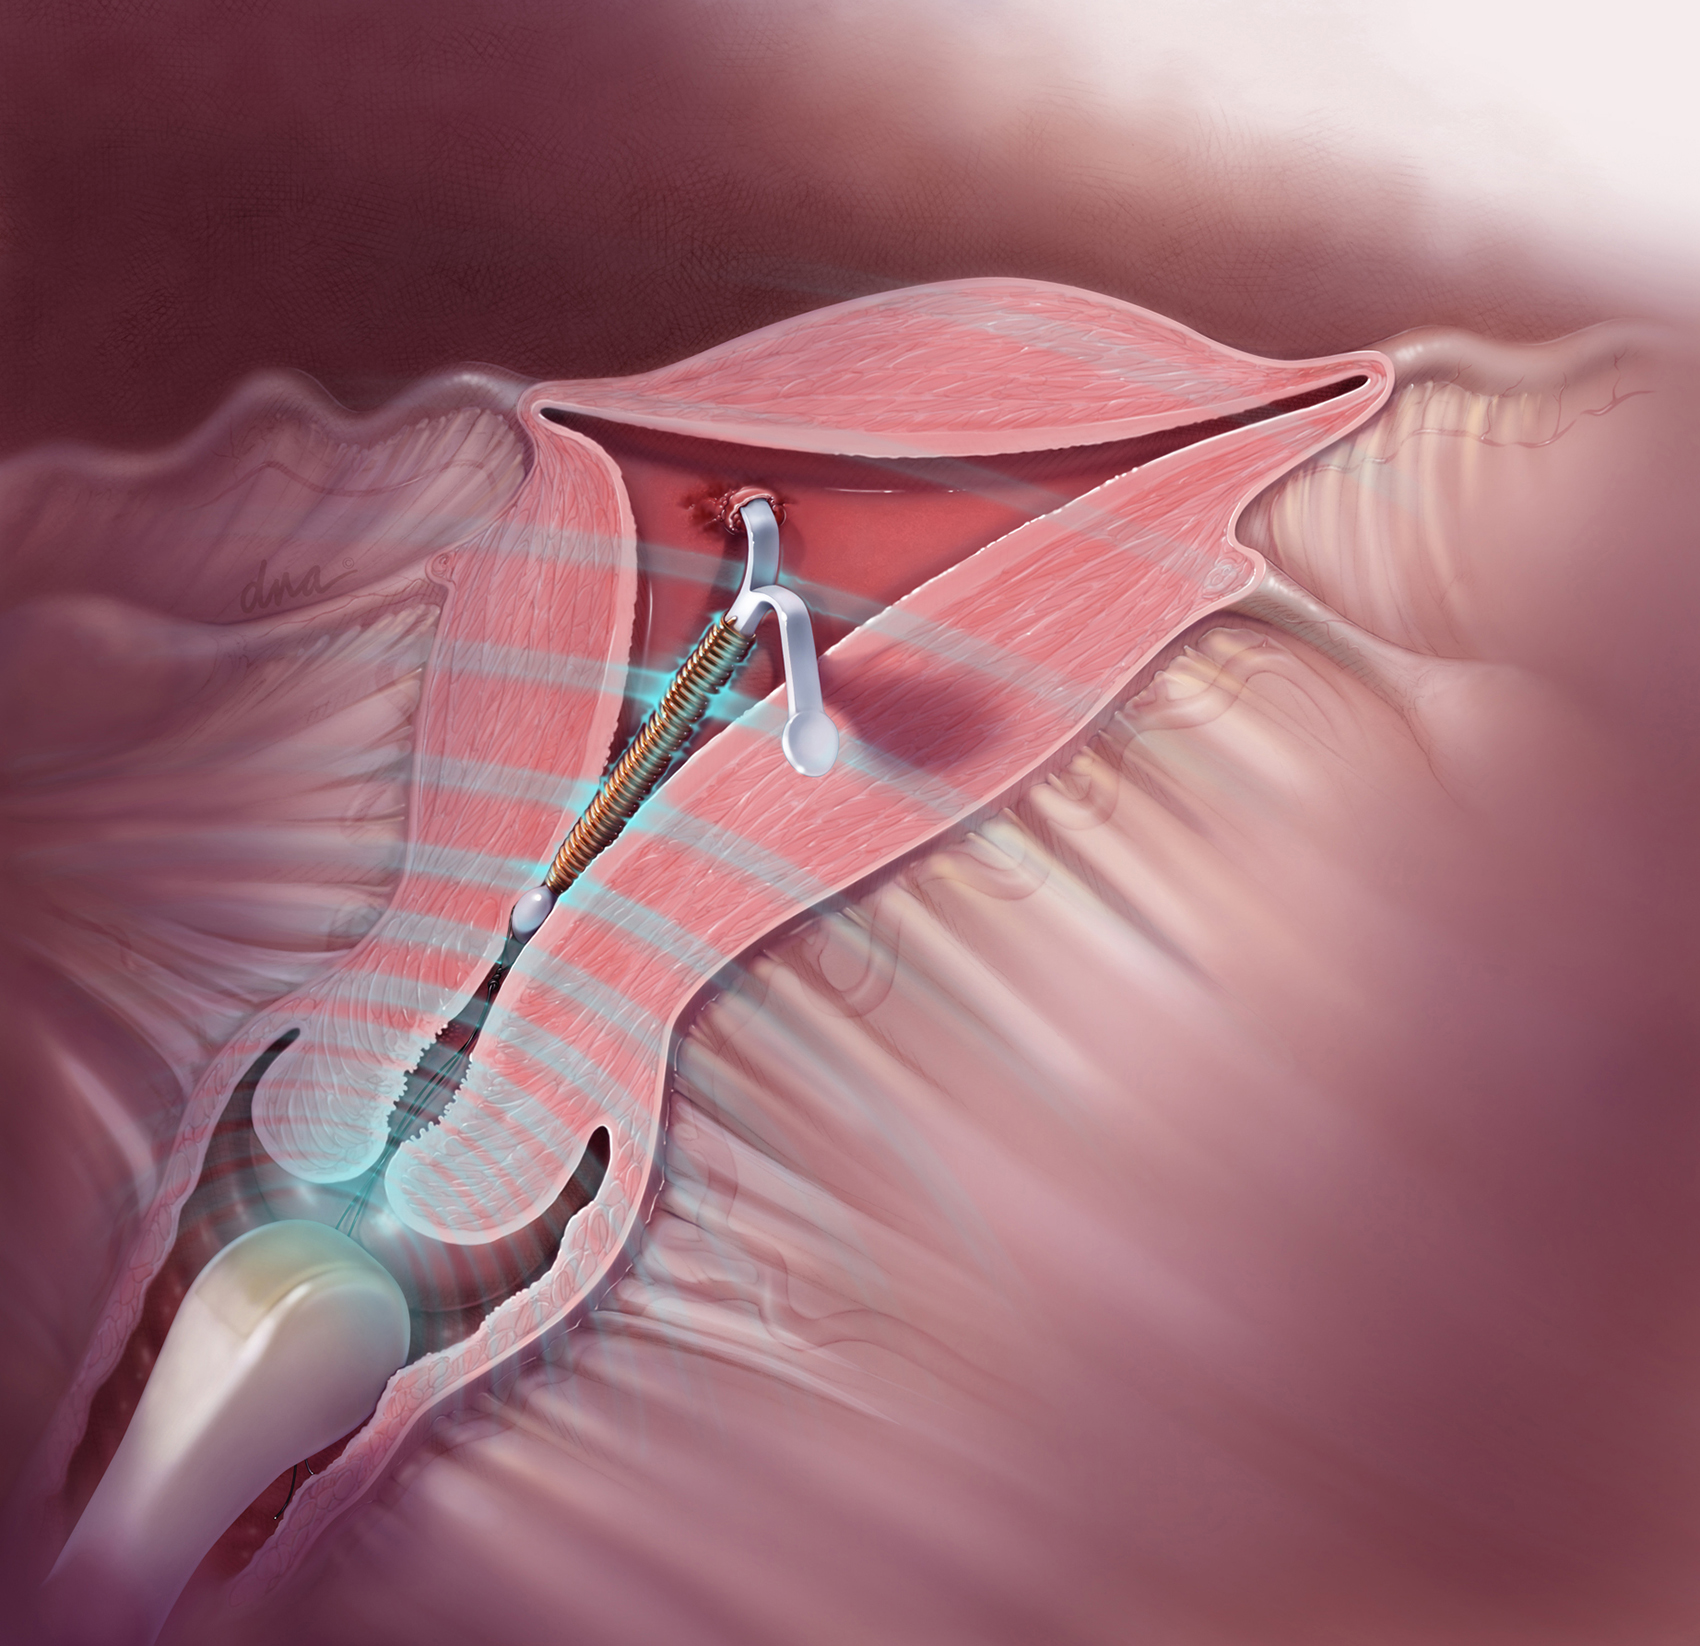 Embedded IUD Removal